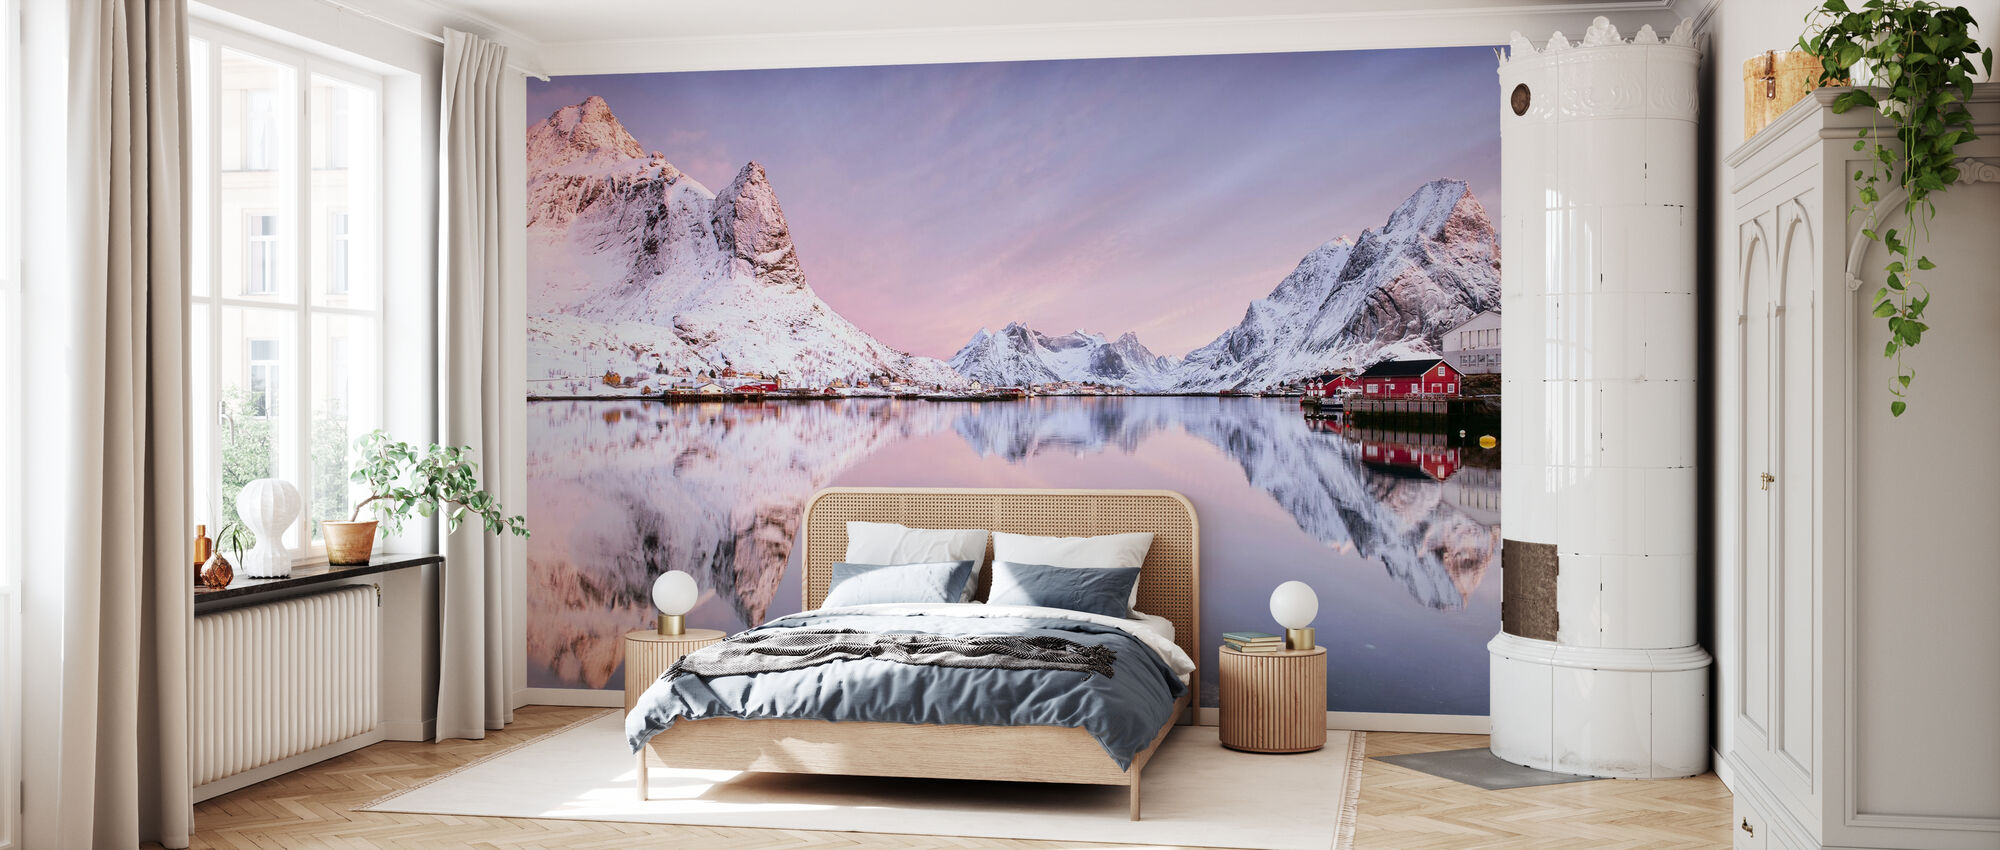 Sunrise at the Fjord - Wallpaper - Bedroom